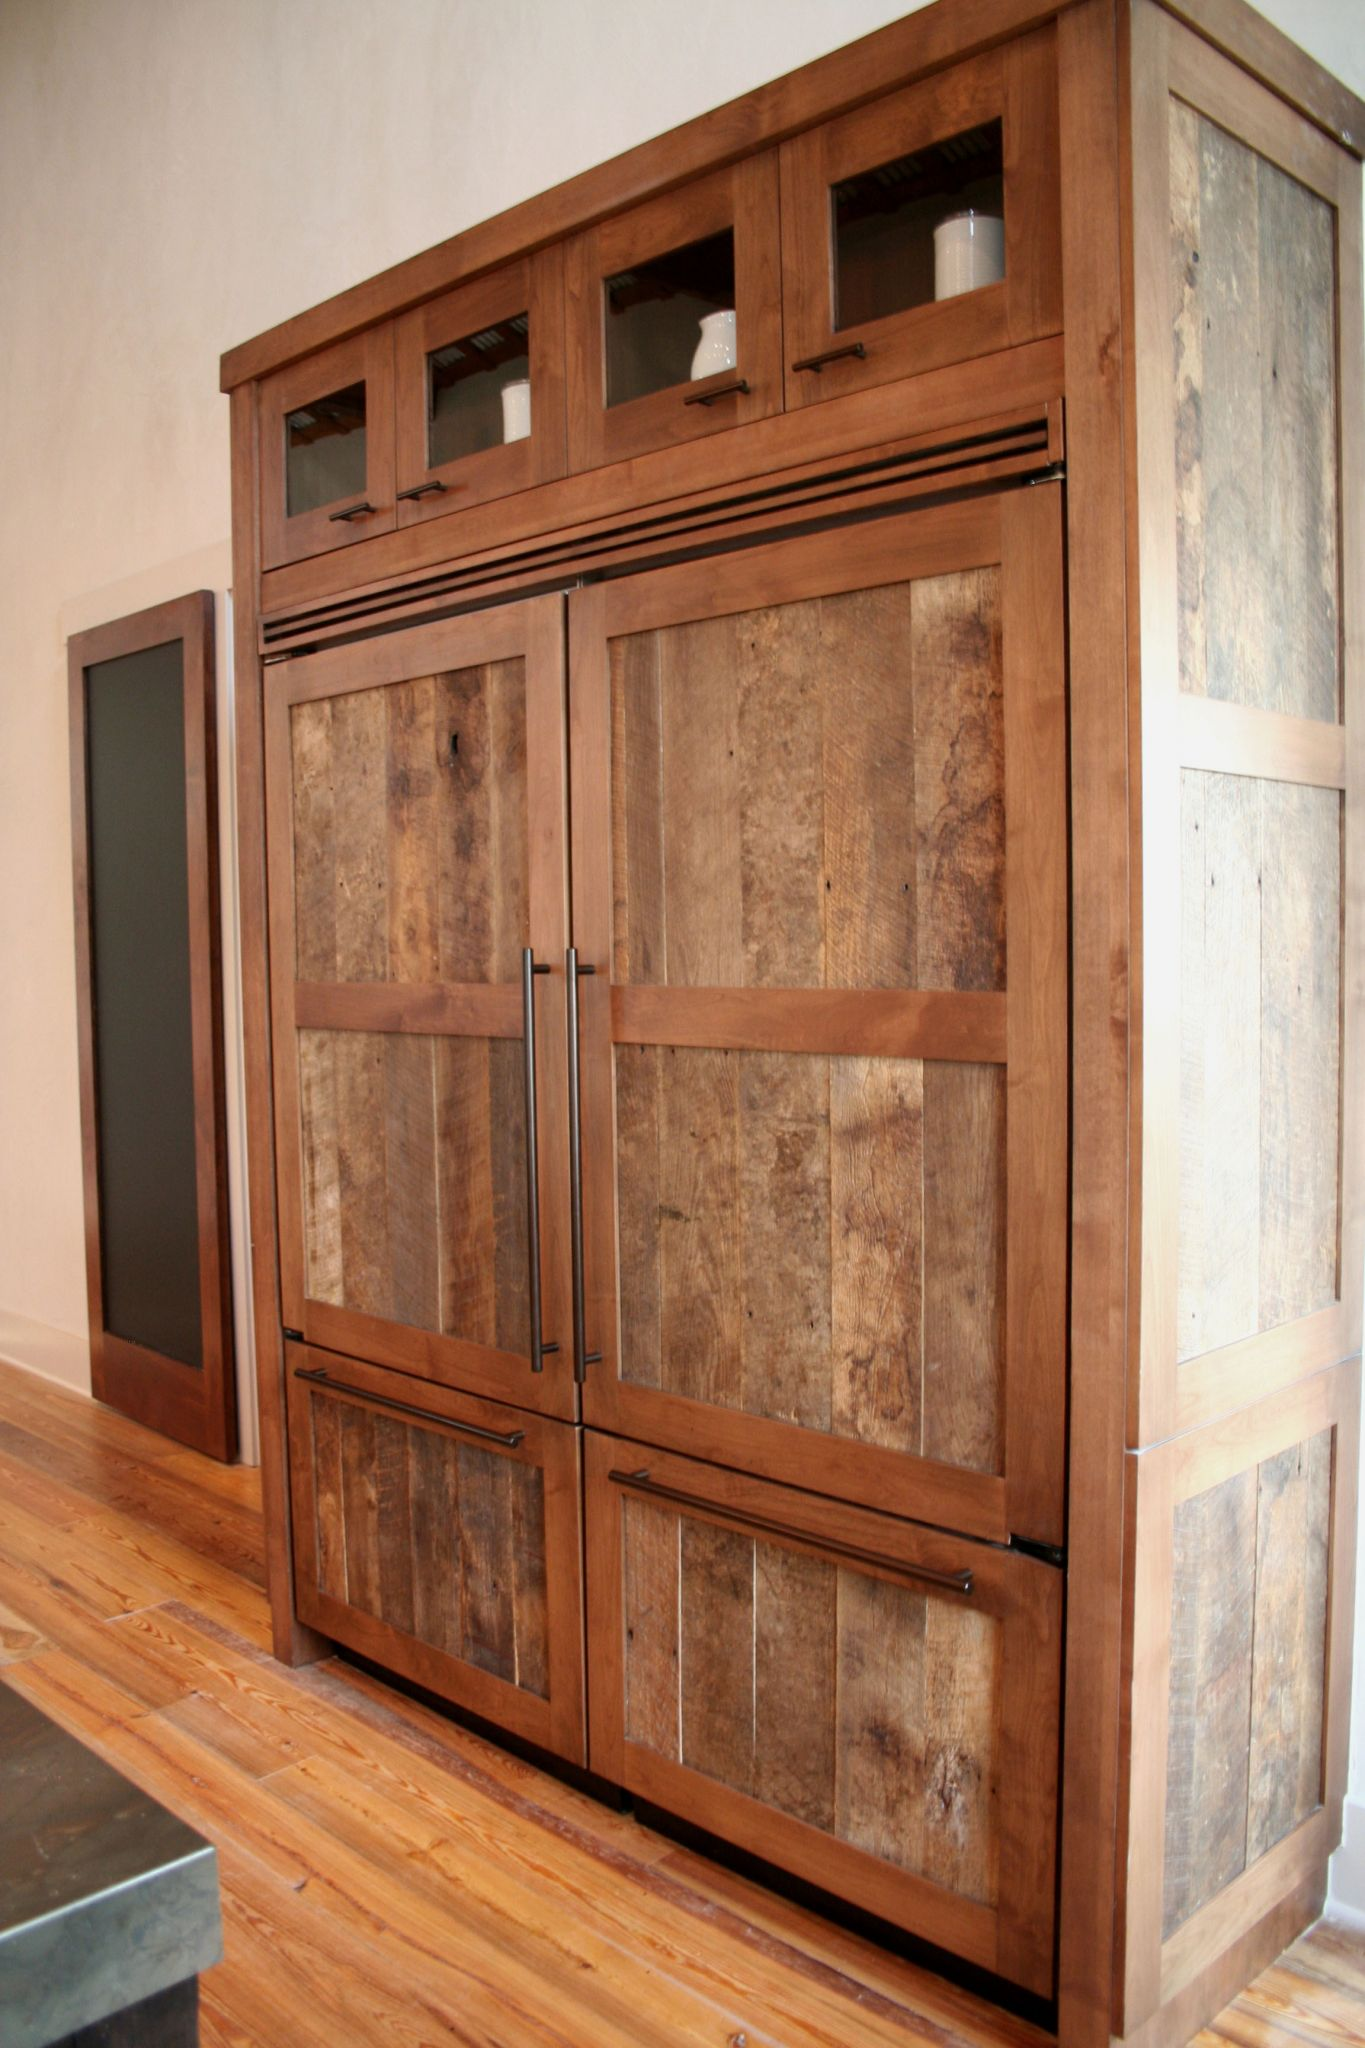 Salvage Kitchen Cabinets Bkc Kitchen And Bath Integrating Reclaimed Wood In Your Remodel